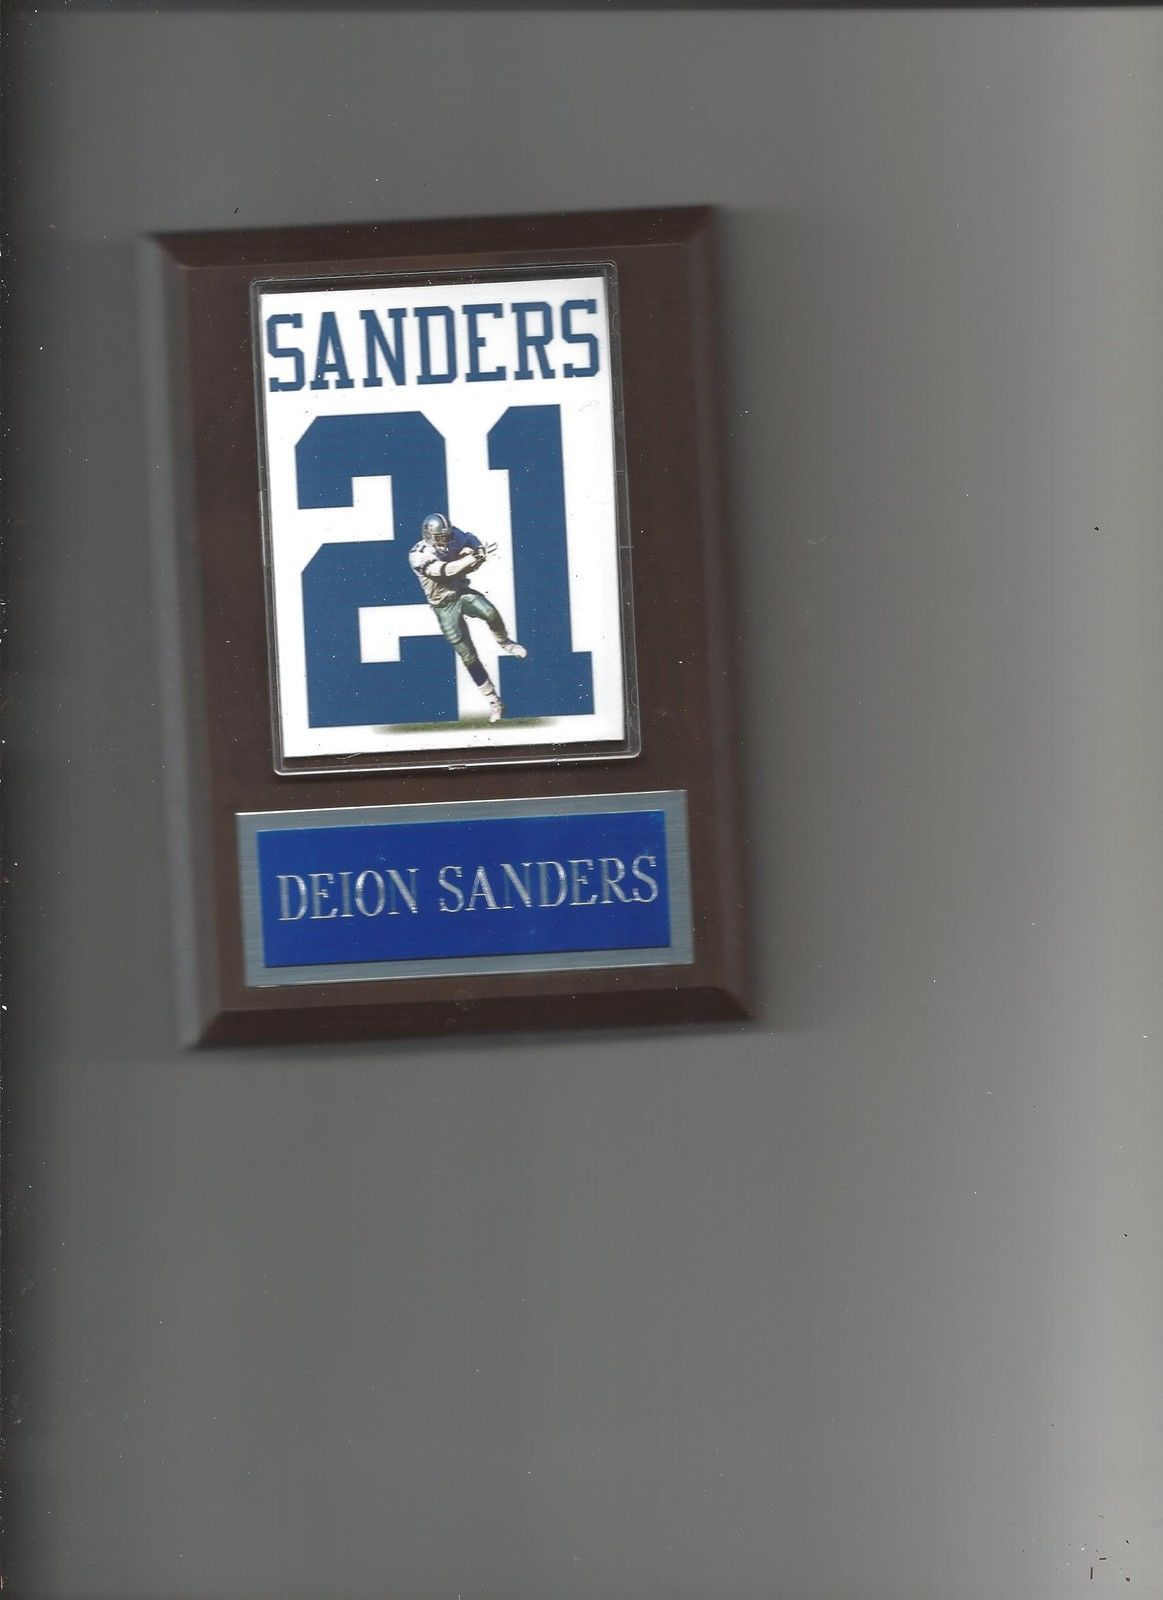 Primary image for DEION SANDERS JERSEY PLAQUE DALLAS COWBOYS FOOTBALL NFL